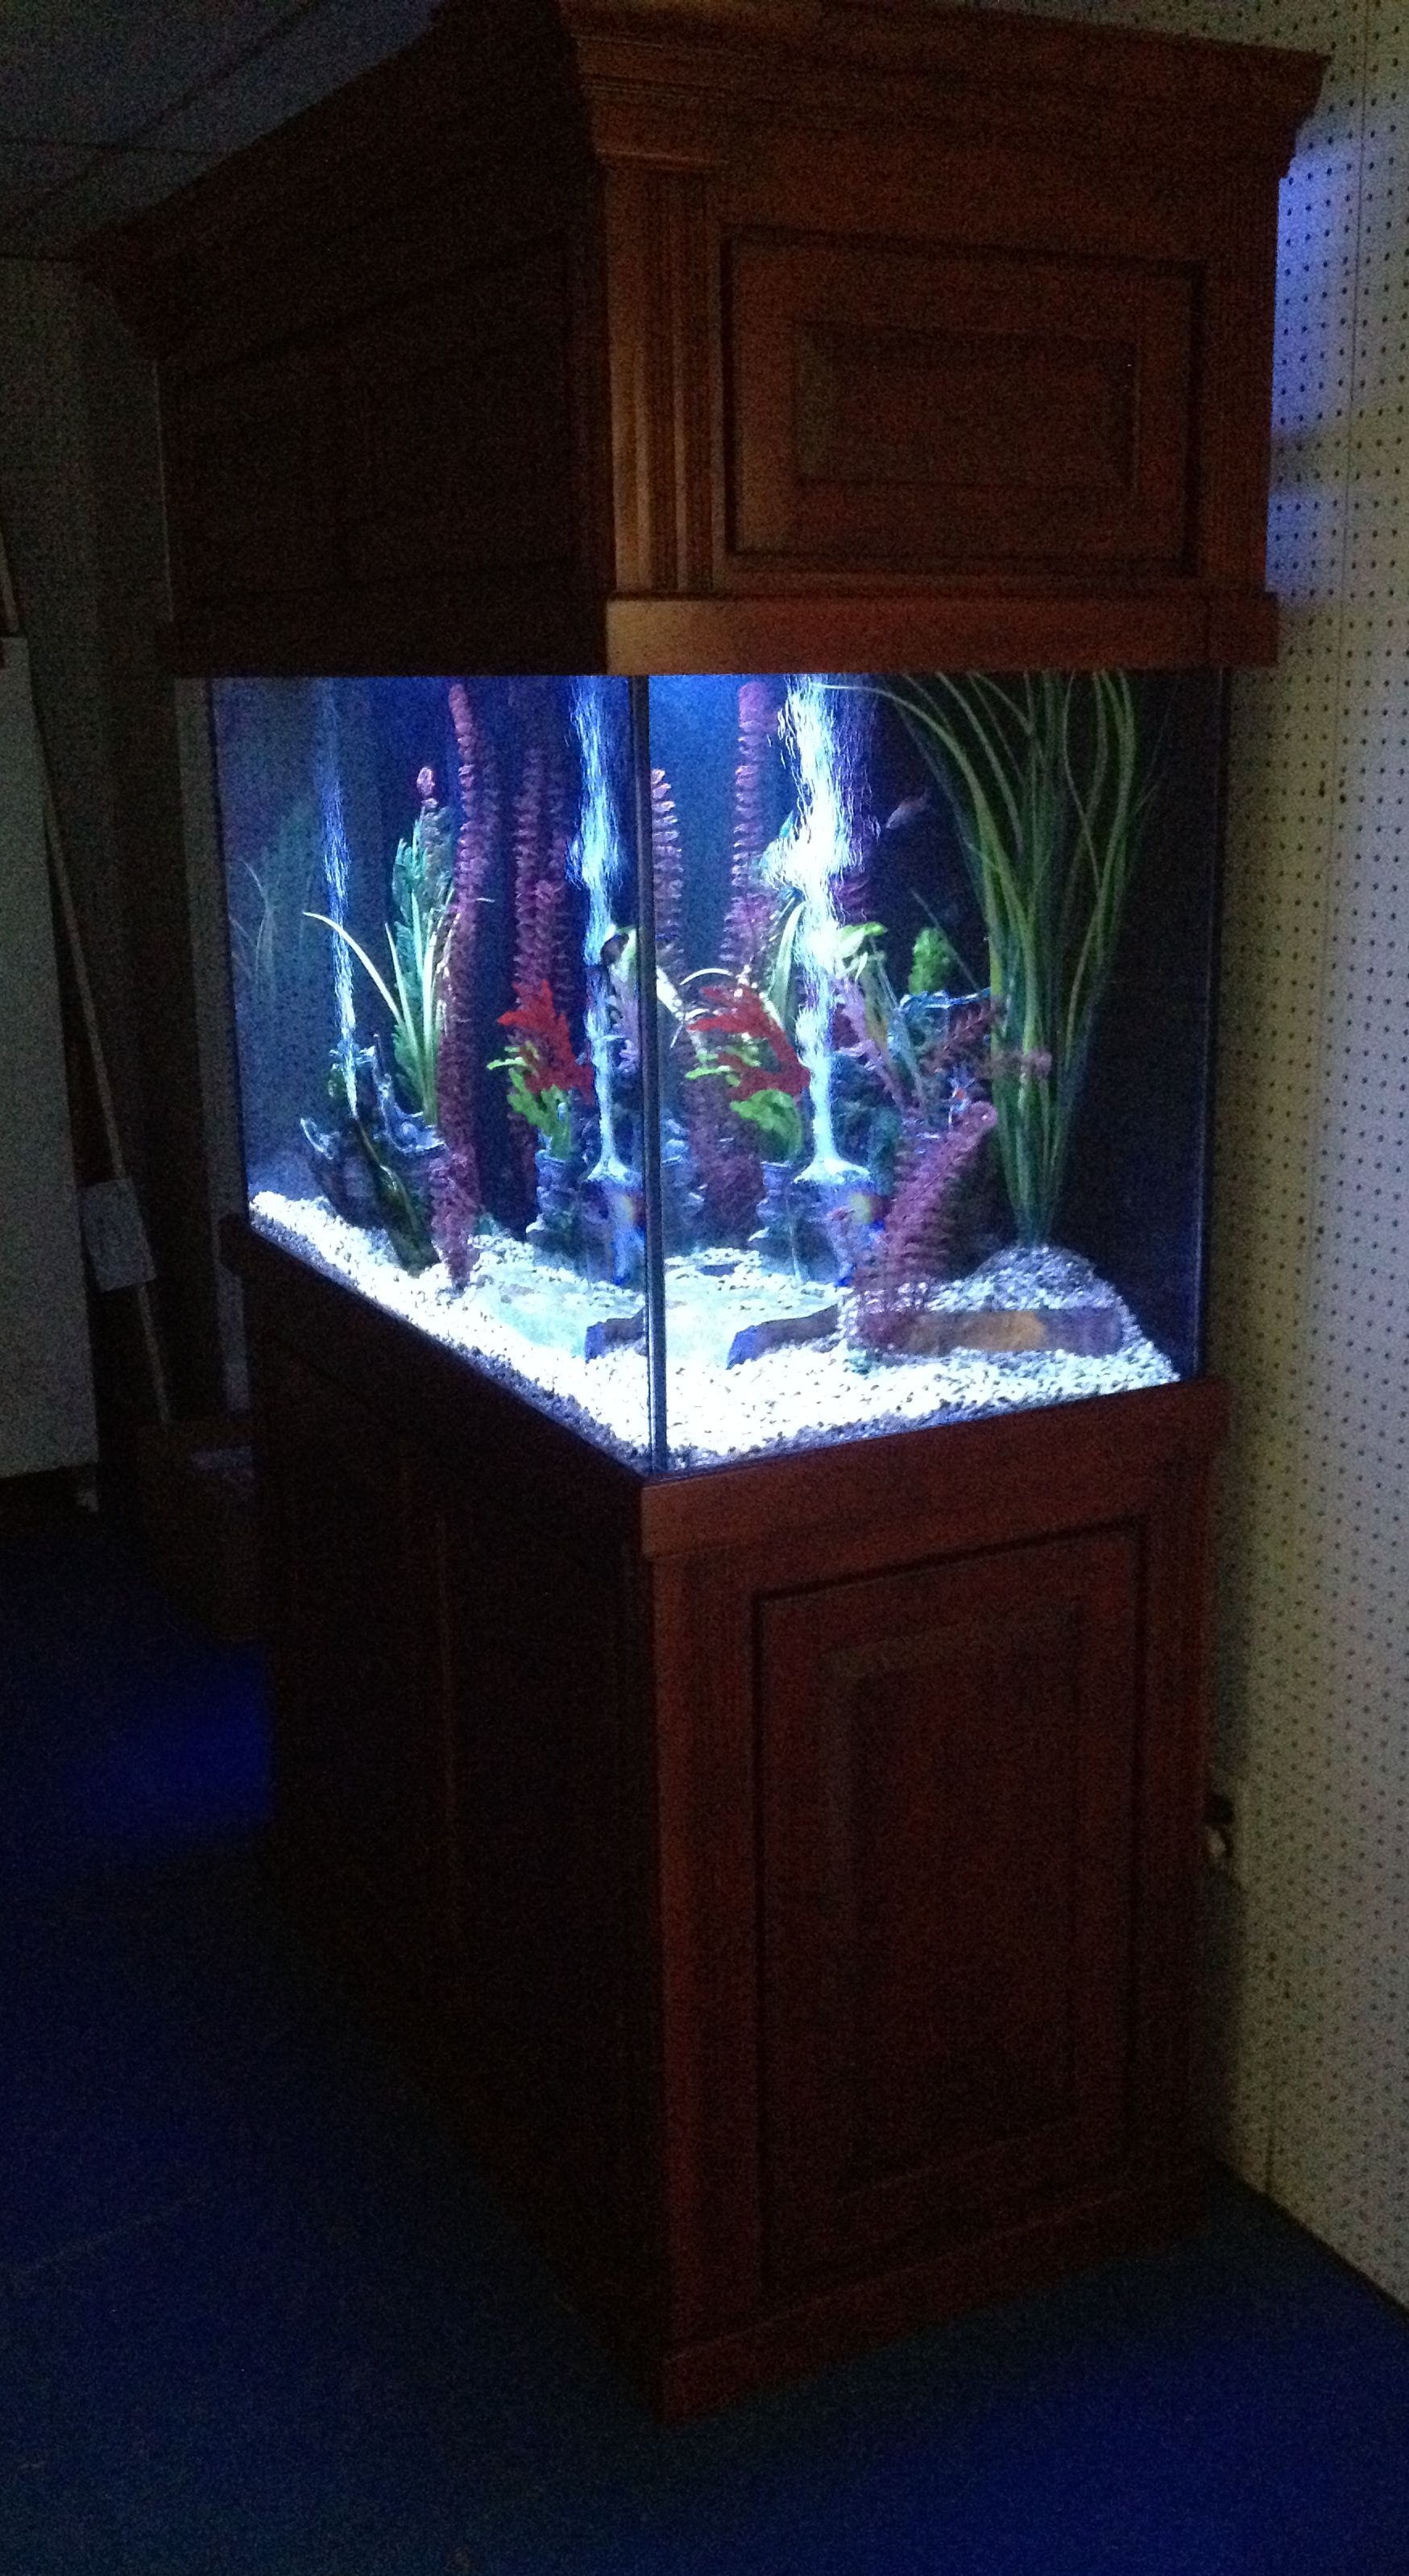 150 Gallon Super Show Mediterranean Ultimate Aquarium Package In Cherry Wood Aquarium Cherry Wood Wood